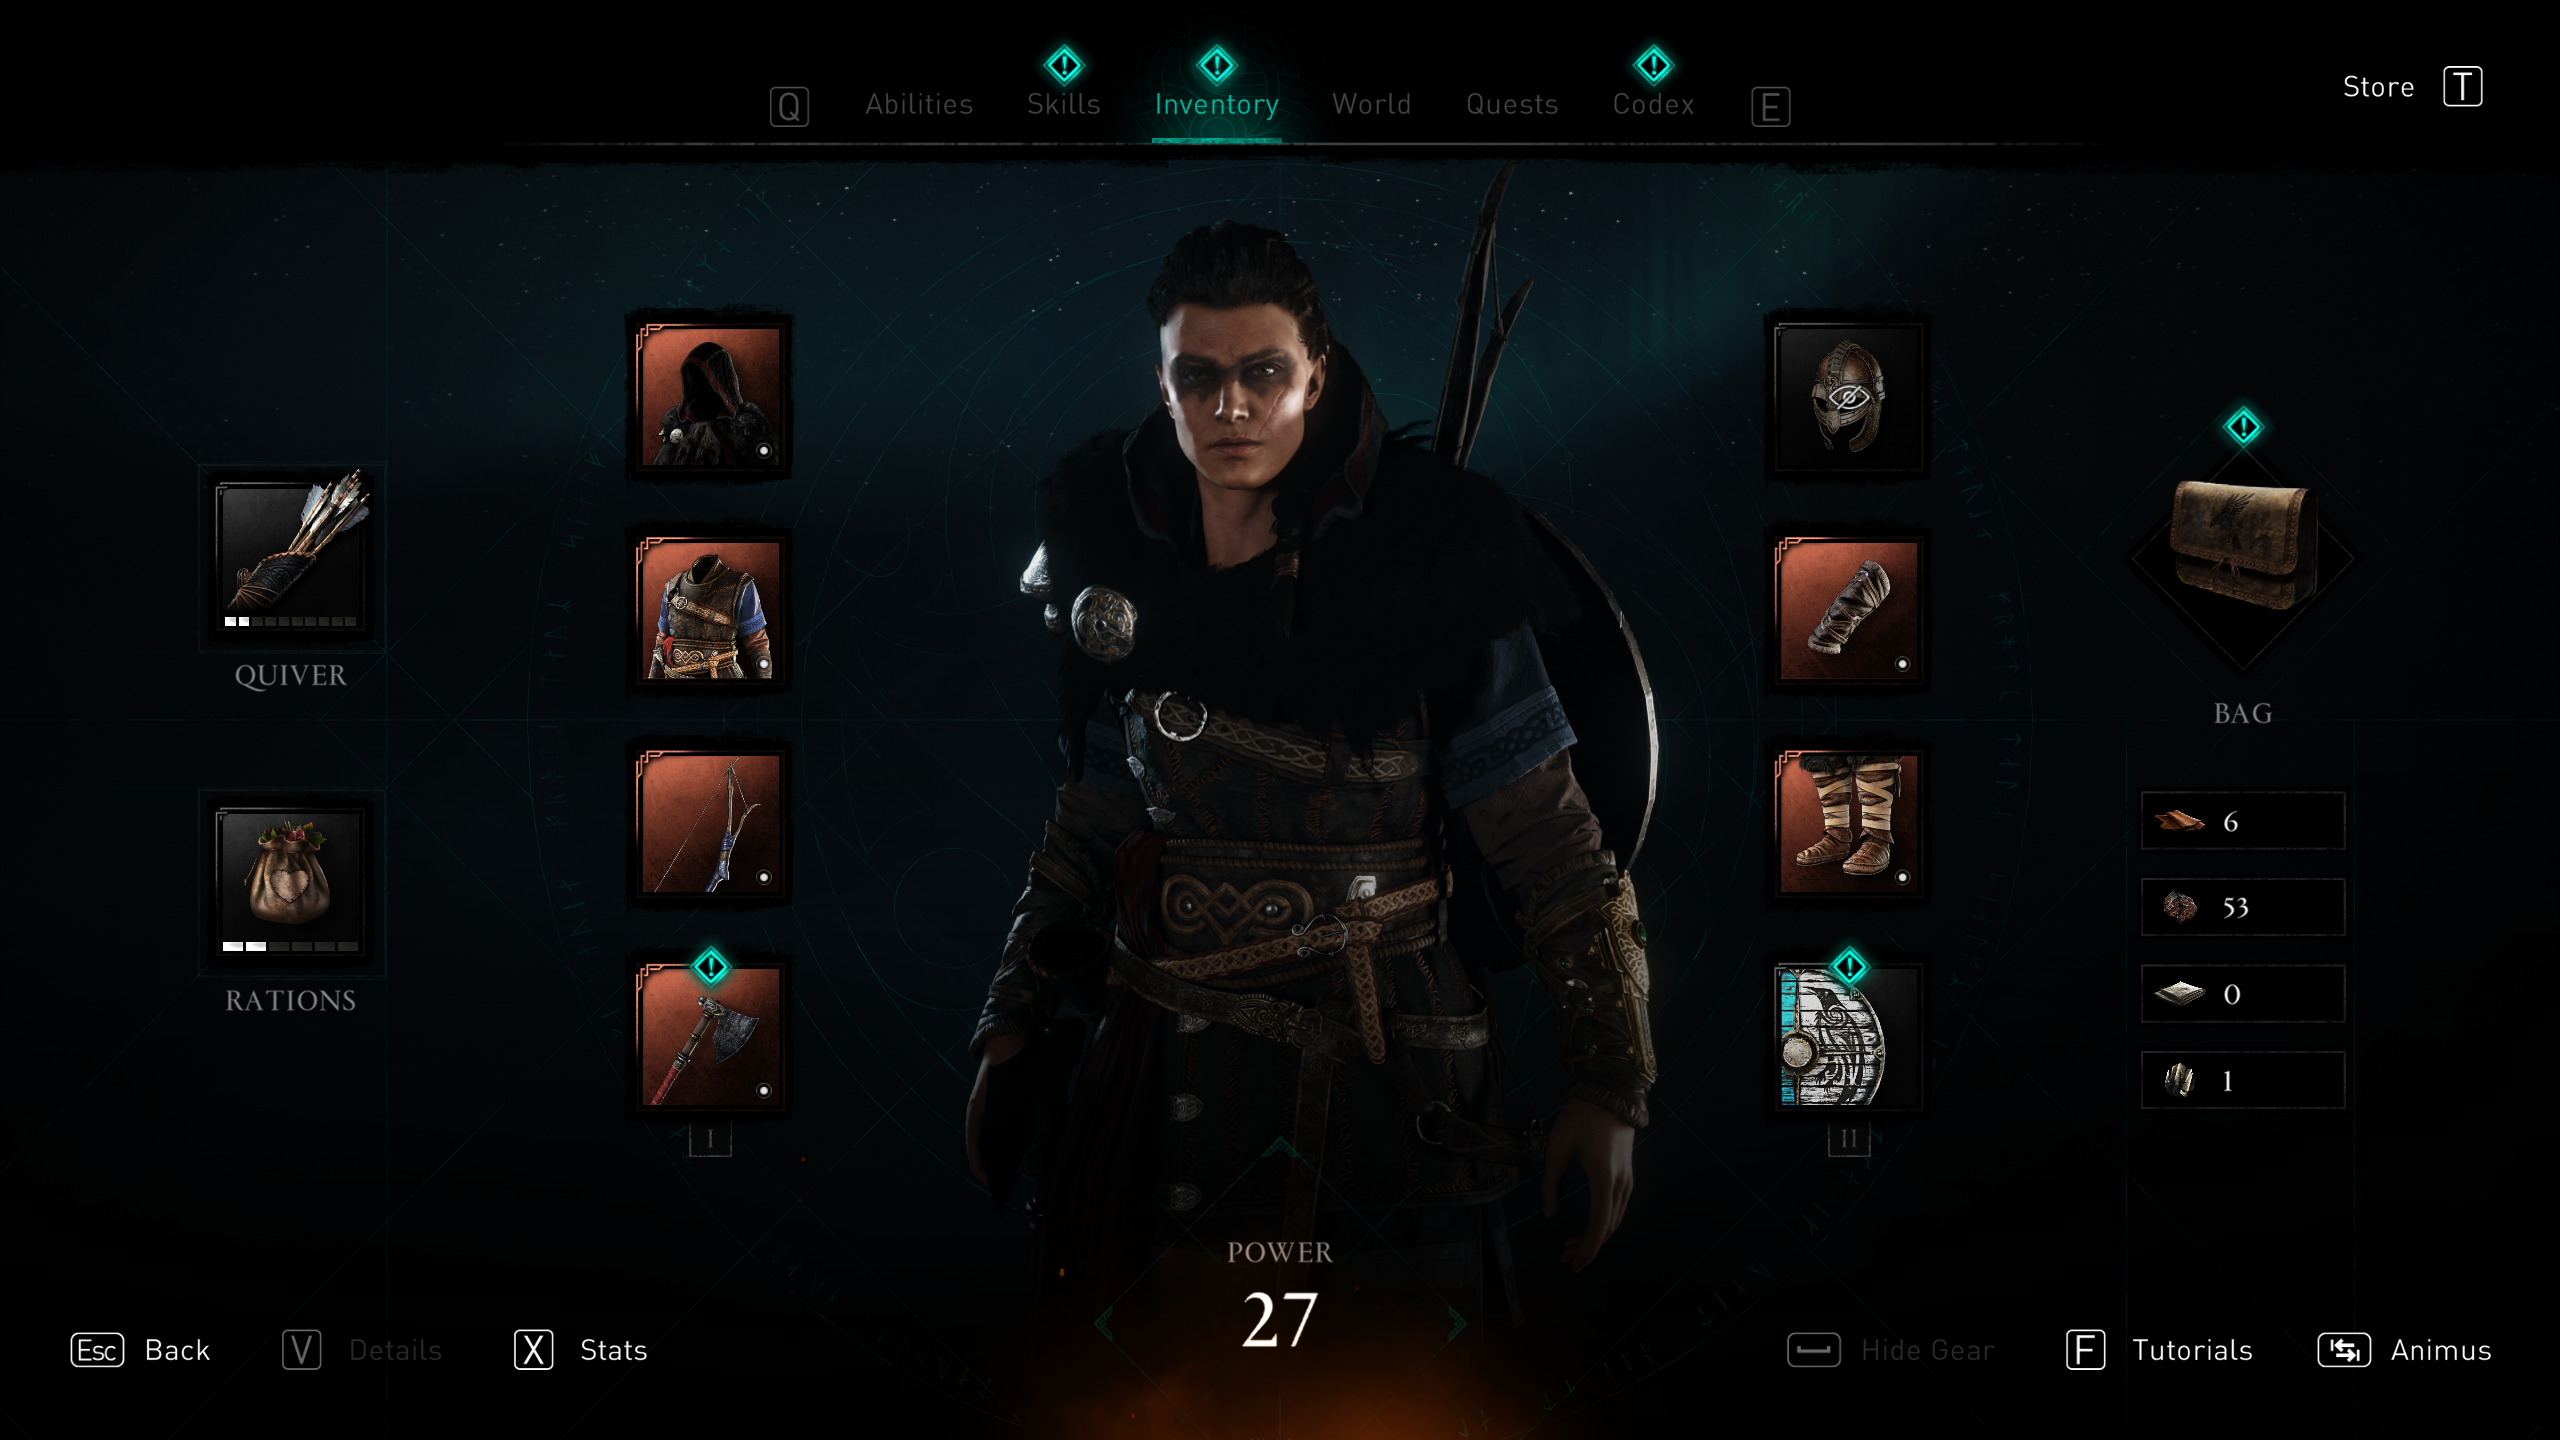 Character screen in Assassin's Creed Valhalla